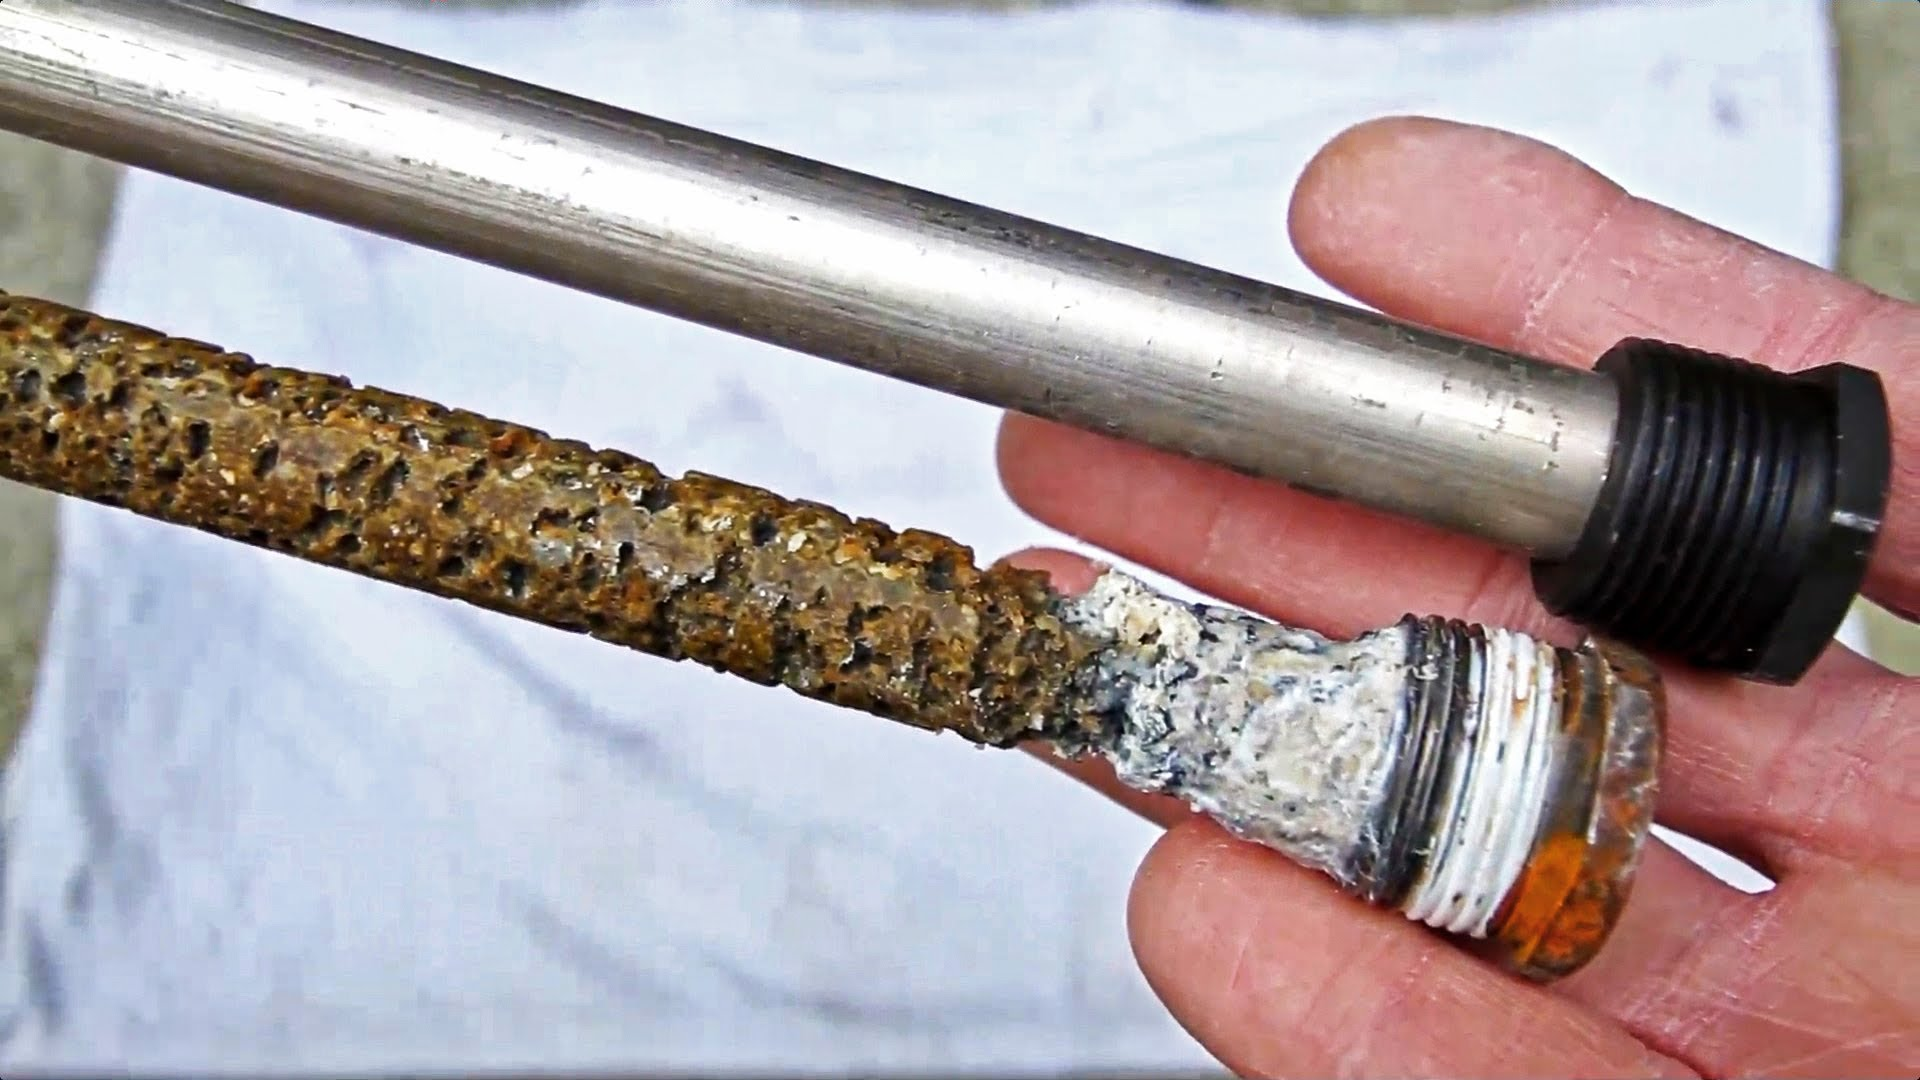 When Is It Time To Change The Anode Rod In Your Water Heater